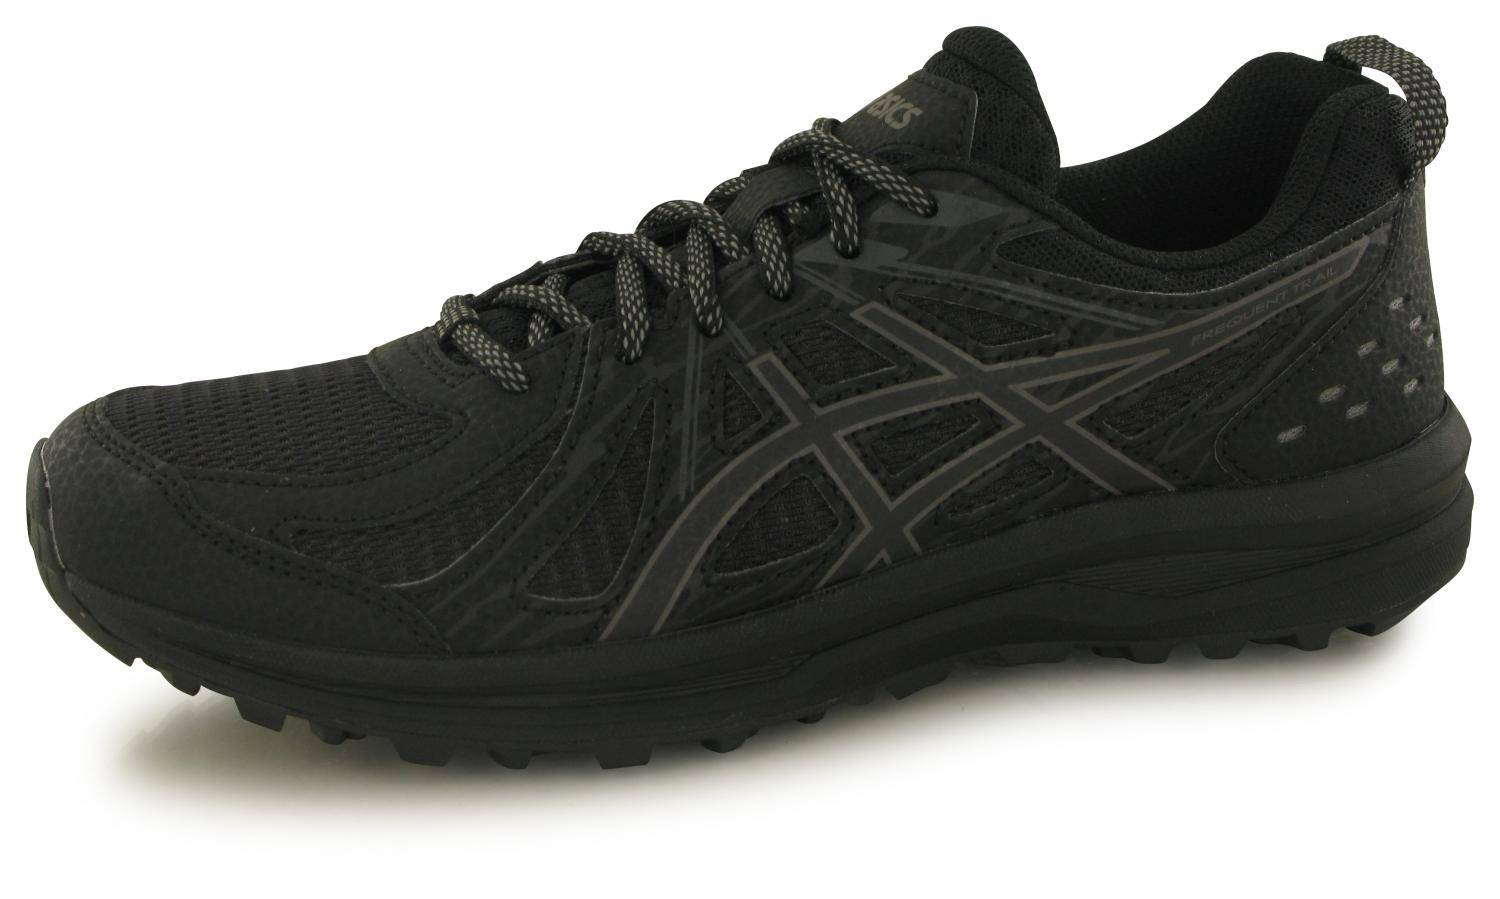 Frequent Noir Carbone Trail Asics Frequent Asics Trail 8wPnON0XkZ